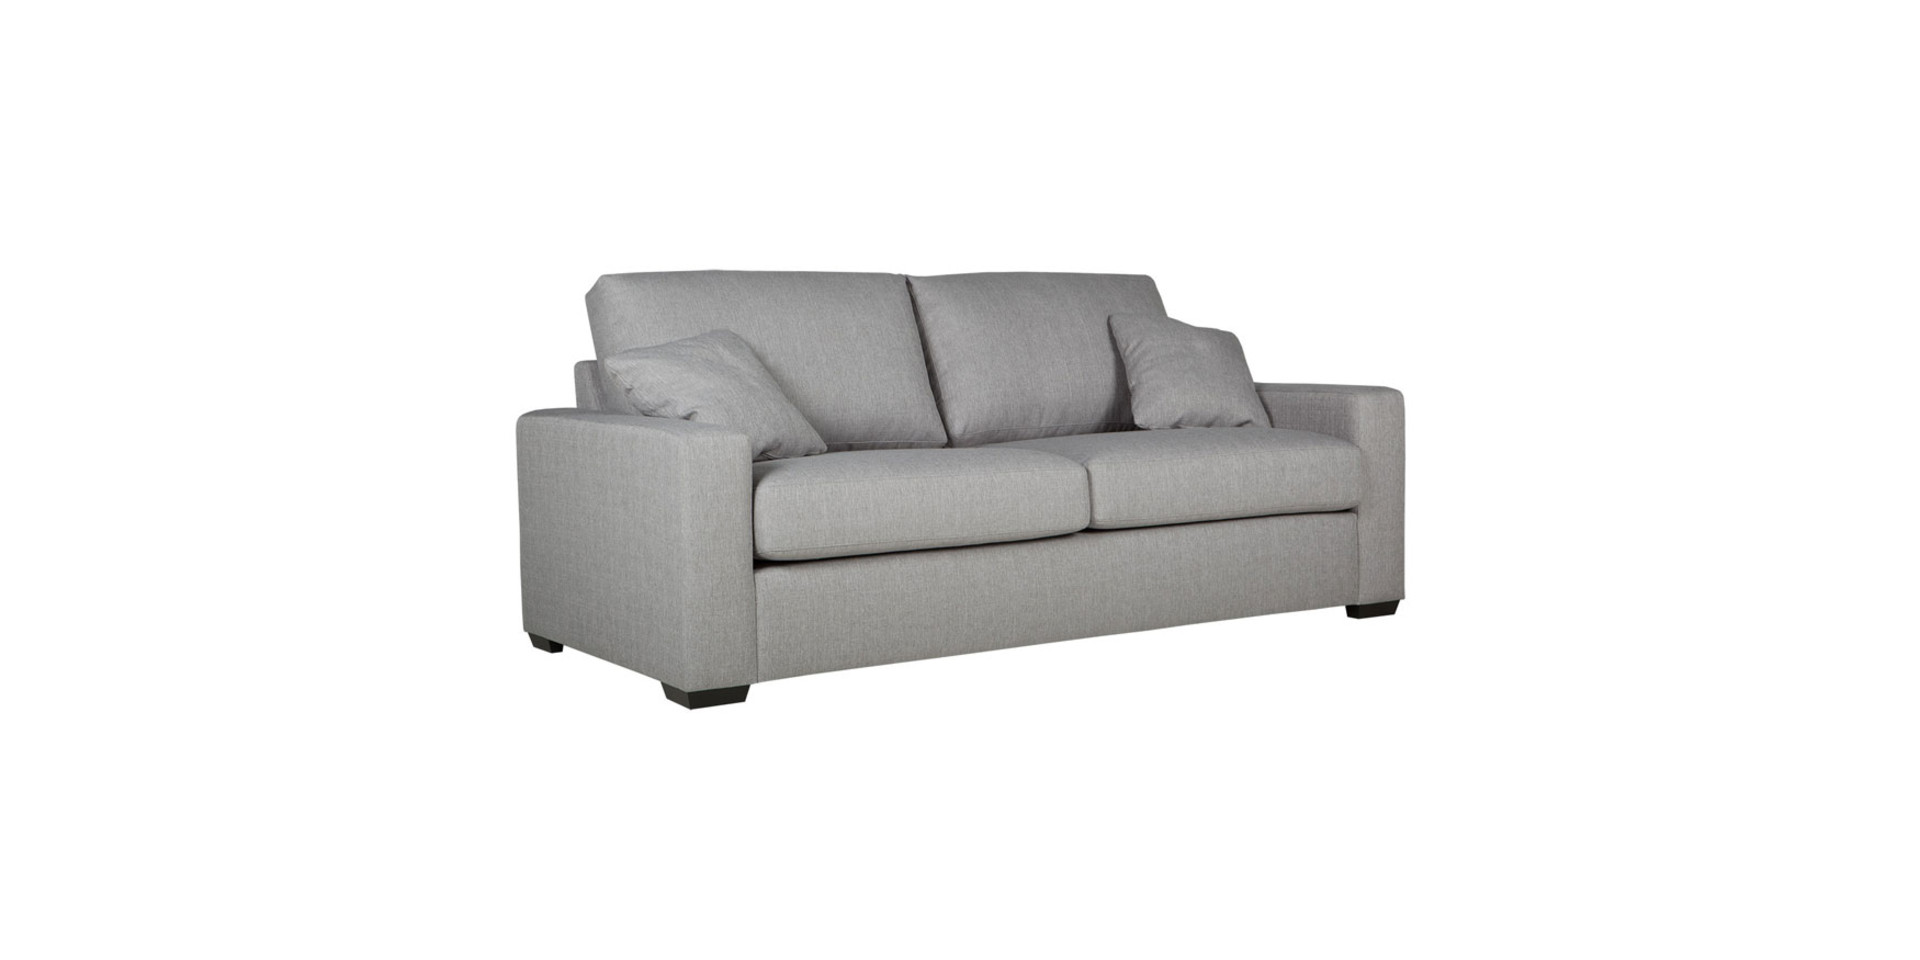 sits-boston-canape-3seater_cedros8_light_grey_2